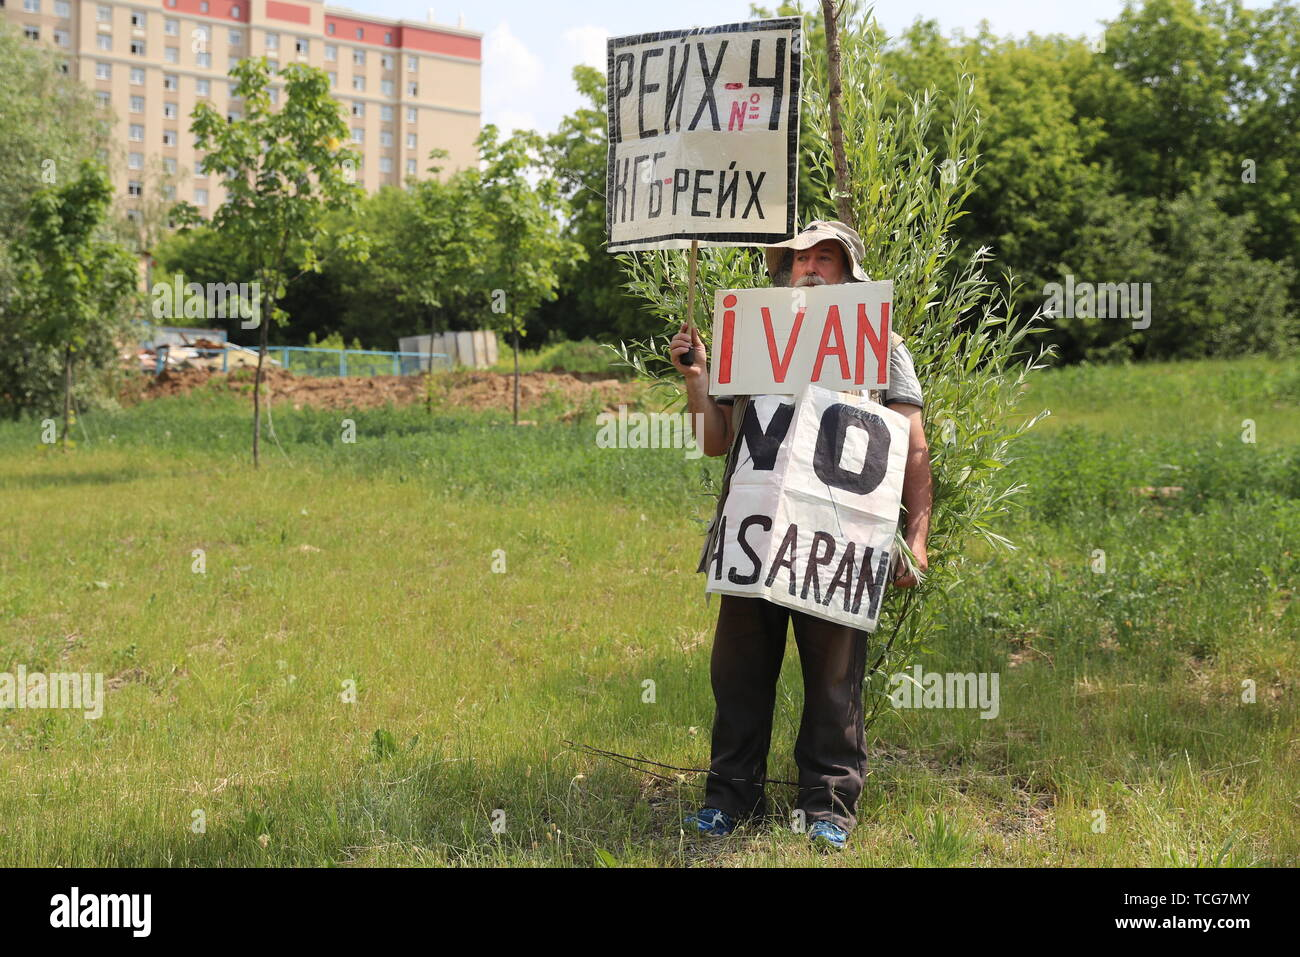 Moscow, Russia. 08th June, 2019. MOSCOW, RUSSIA - JUNE 8, 2019: A protester holds signs with messages reading 'Ivan, No Pasaran' and 'KGB Reich' outside Moscow's Nikulinsky District Court where an arrest warrant hearing is to be held for journalist Ivan Golunov; Golunov, who works for the online news portal Meduza, was detained on 6 June 2019 in central Moscow on suspicion of drug dealing. Sergei Savostyanov/TASS Credit: ITAR-TASS News Agency/Alamy Live News - Stock Image